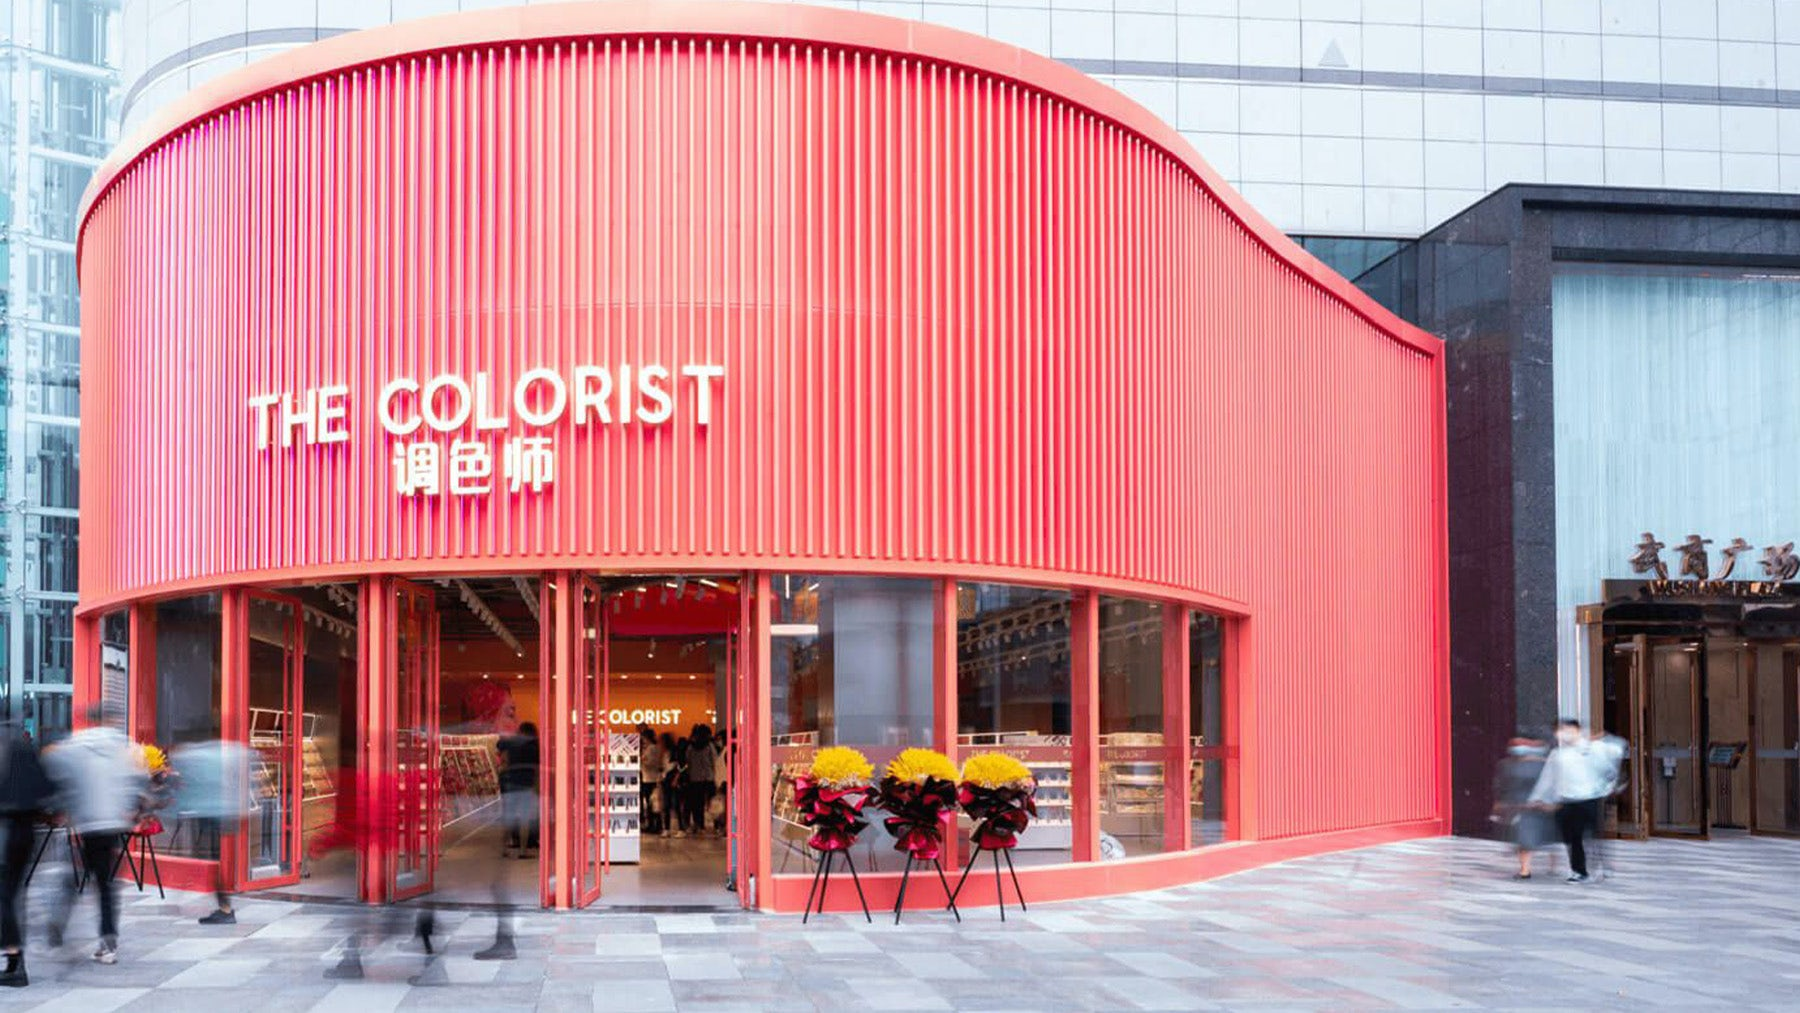 The exterior of one of The Colorist's 300-plus stores. KK Group.